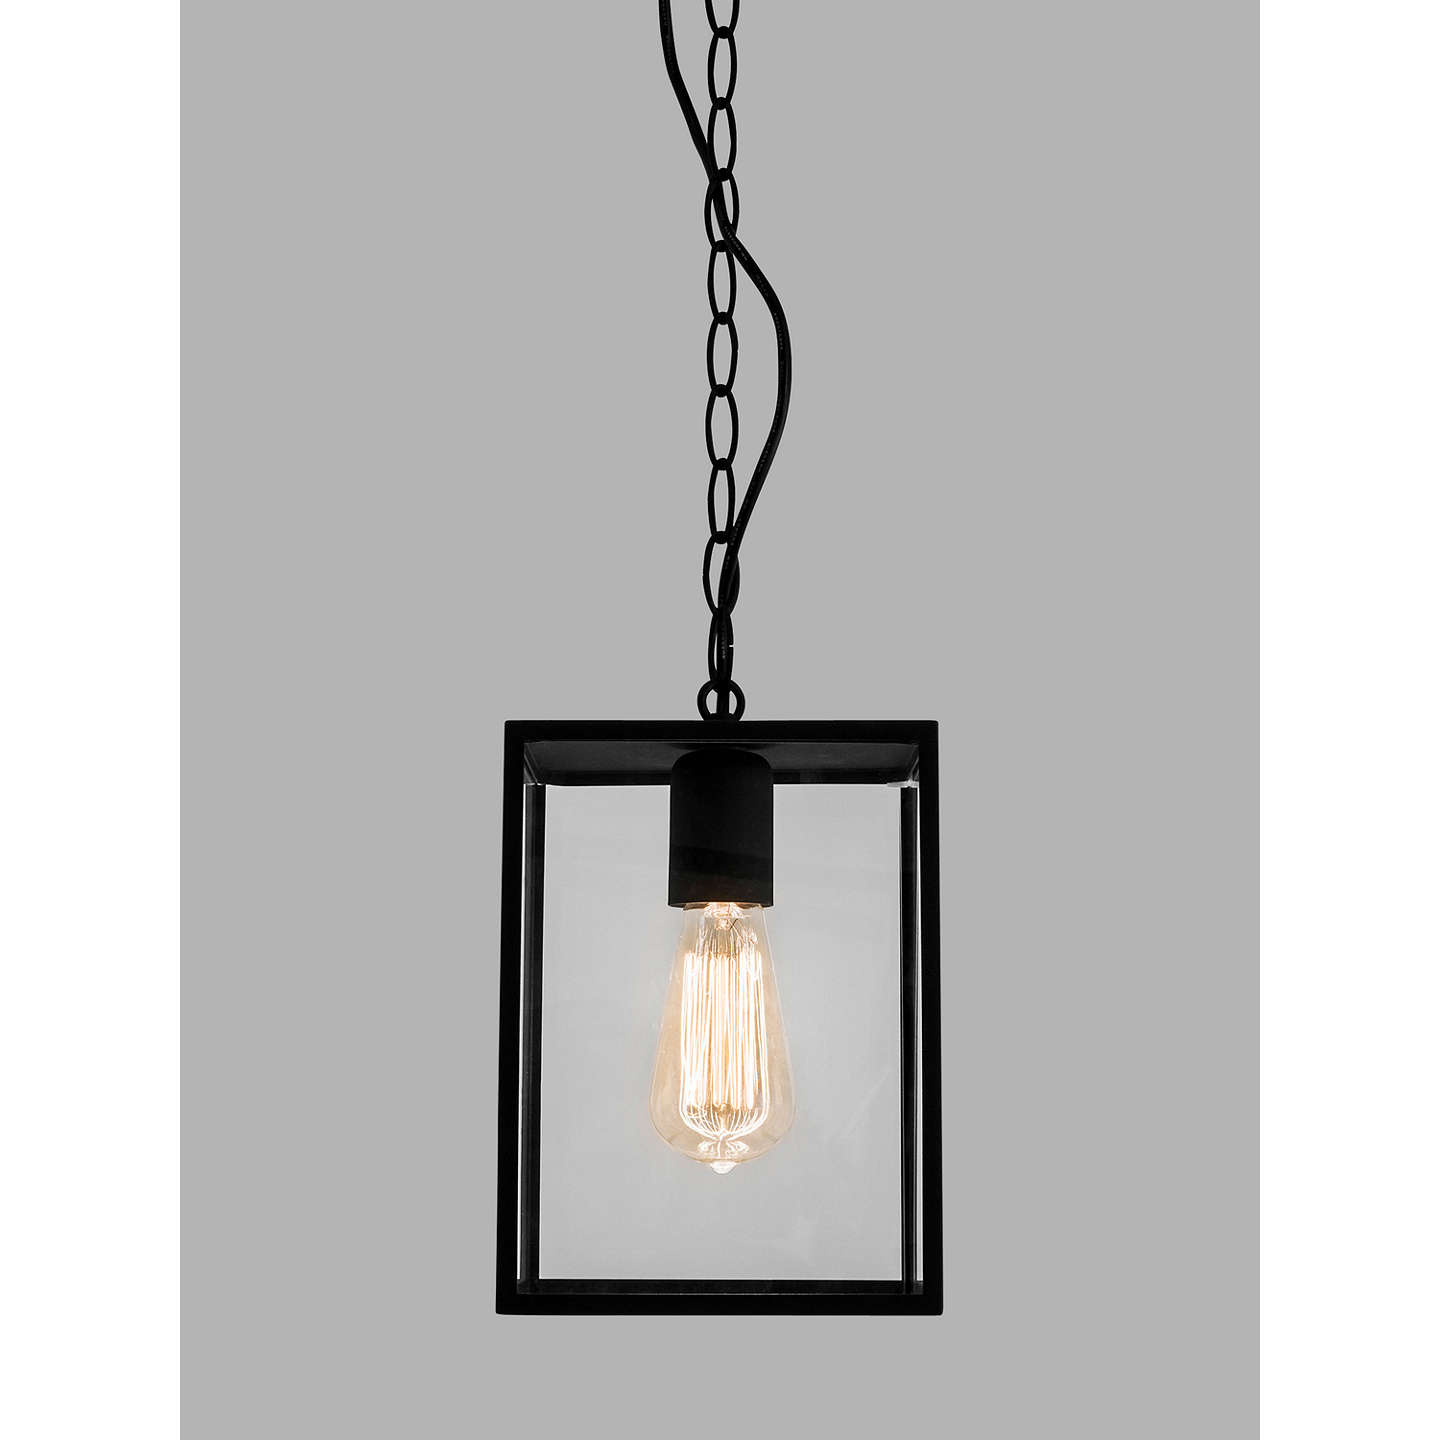 lights light black shape pendant narrow with uk enola co